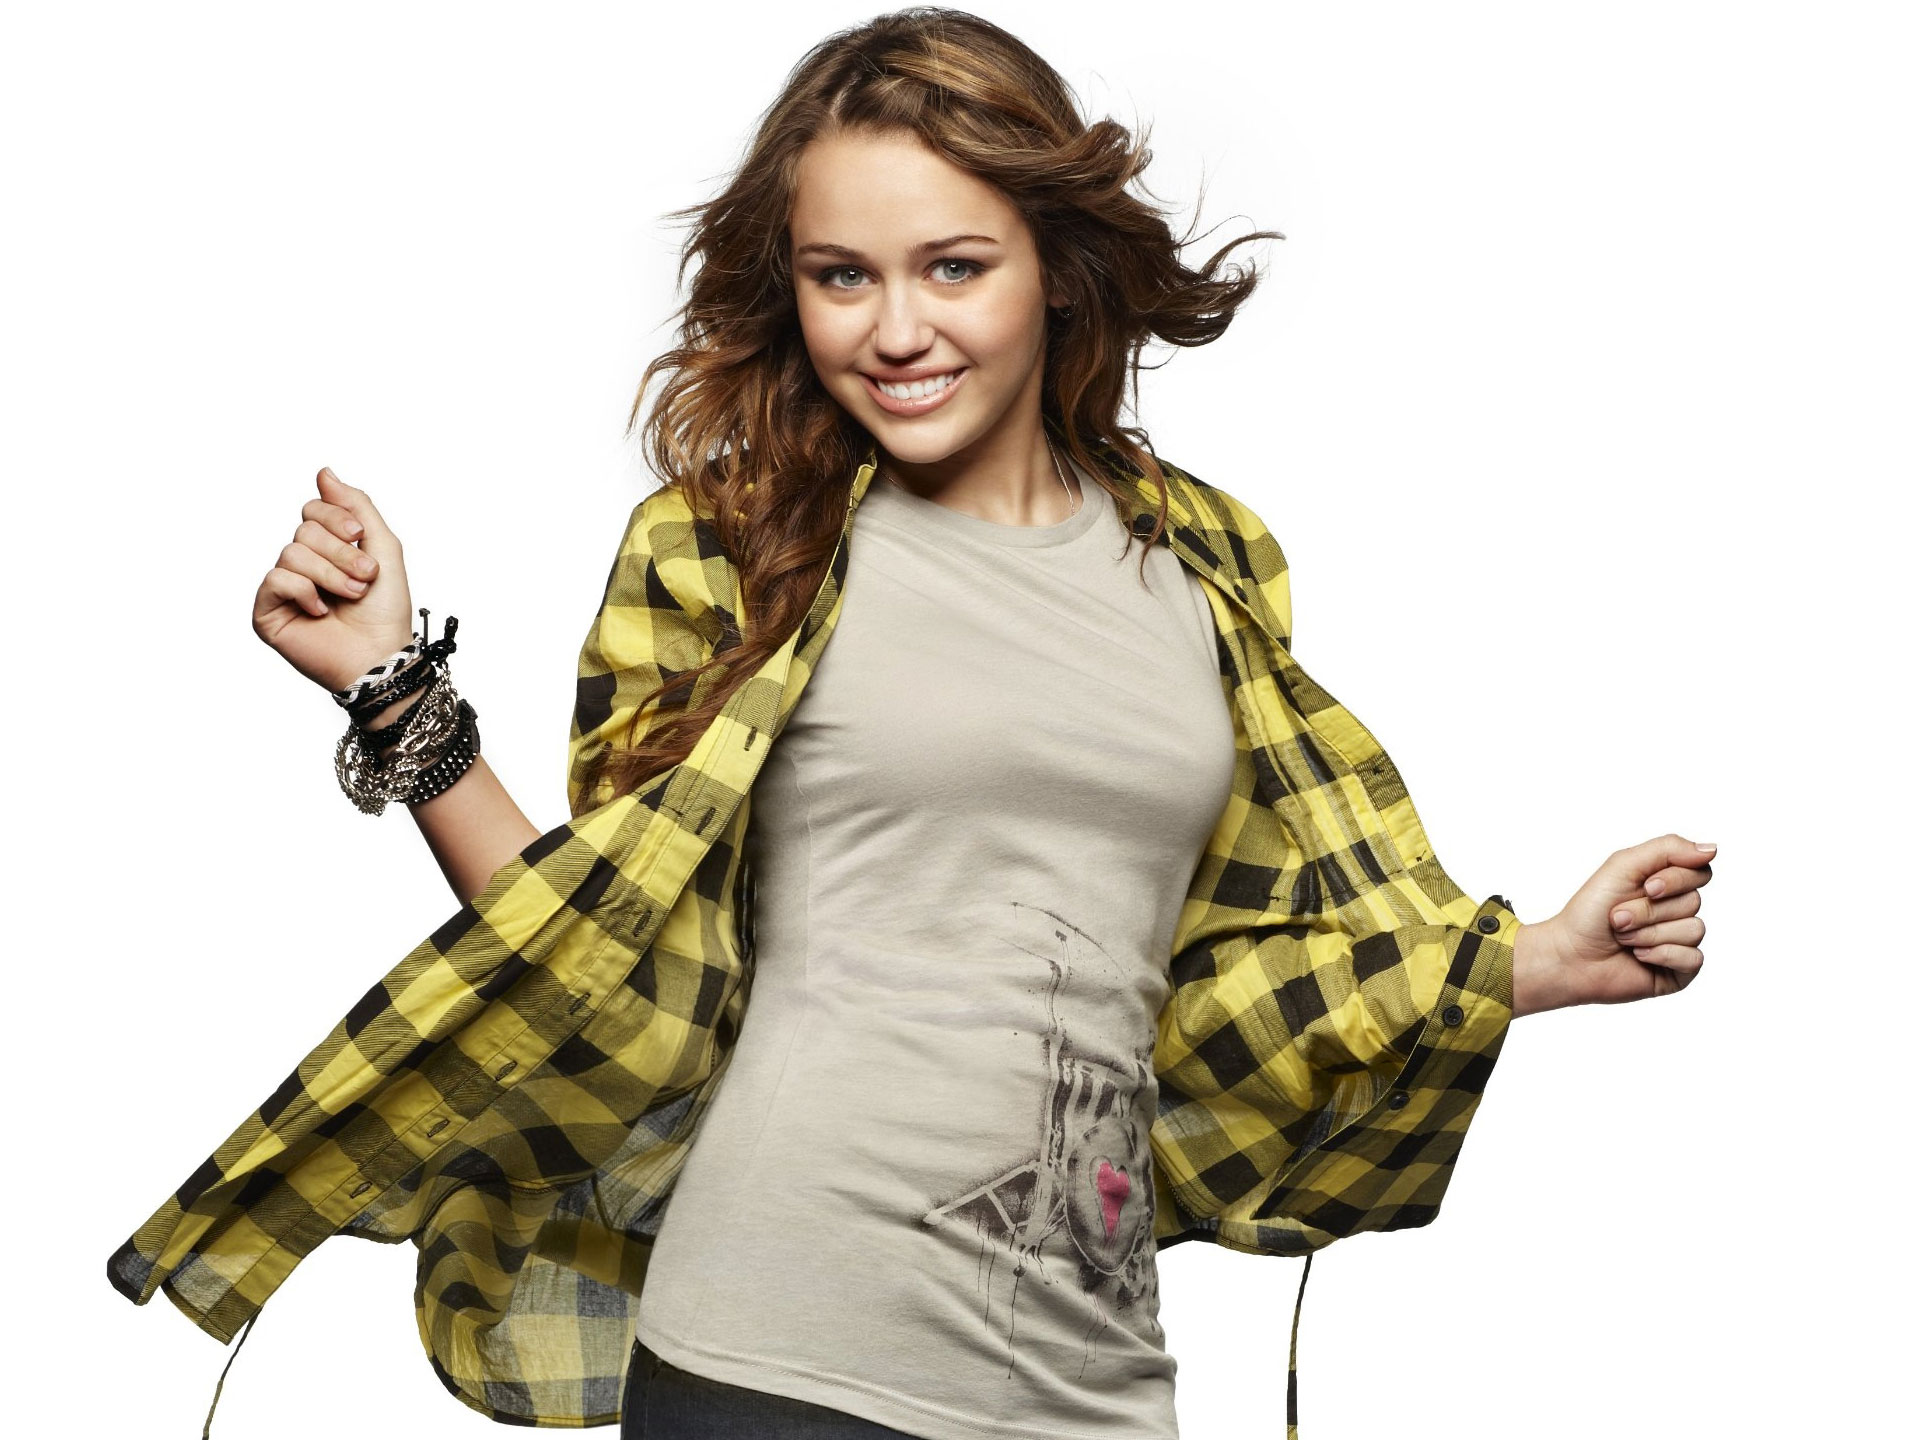 Miley Ray Cyrus 562.67 Kb